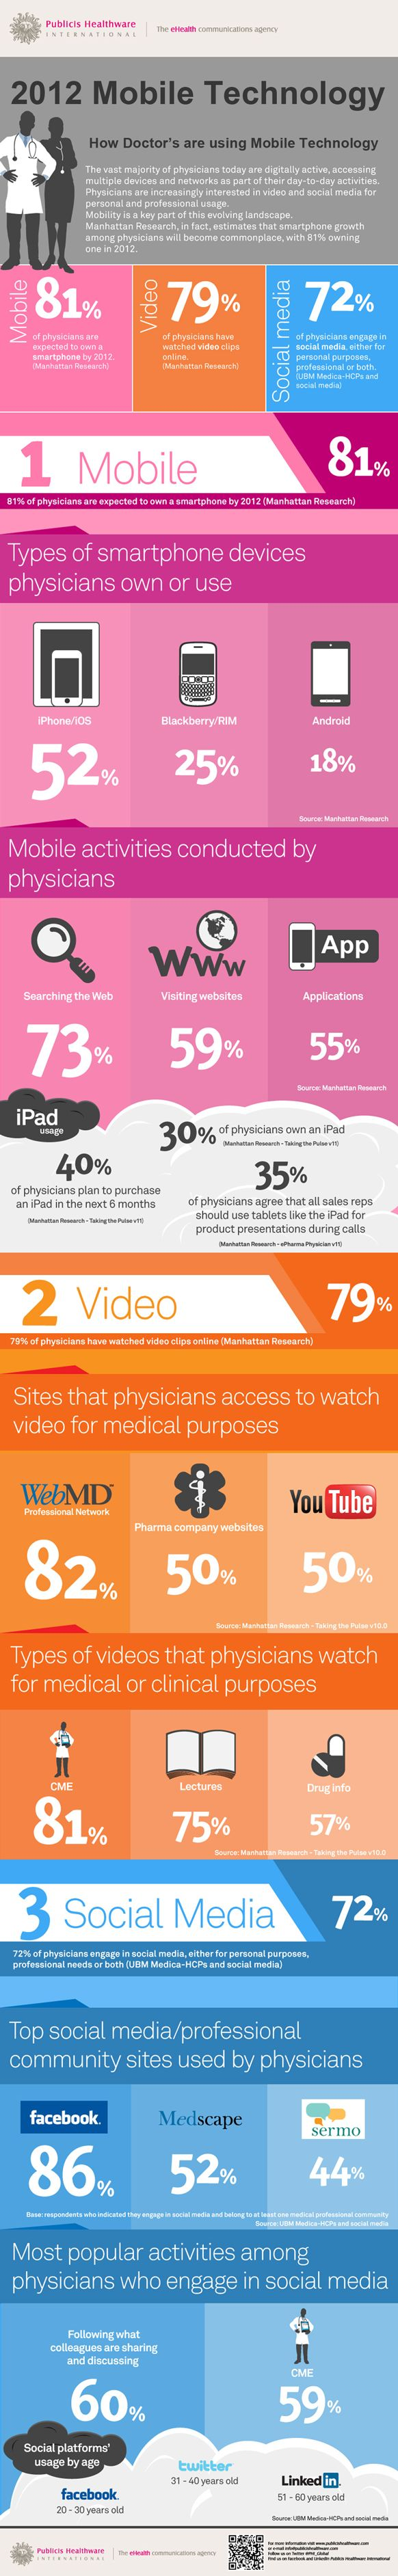 How doctors' use of mobile technology impacts telehealth - infographic and insights